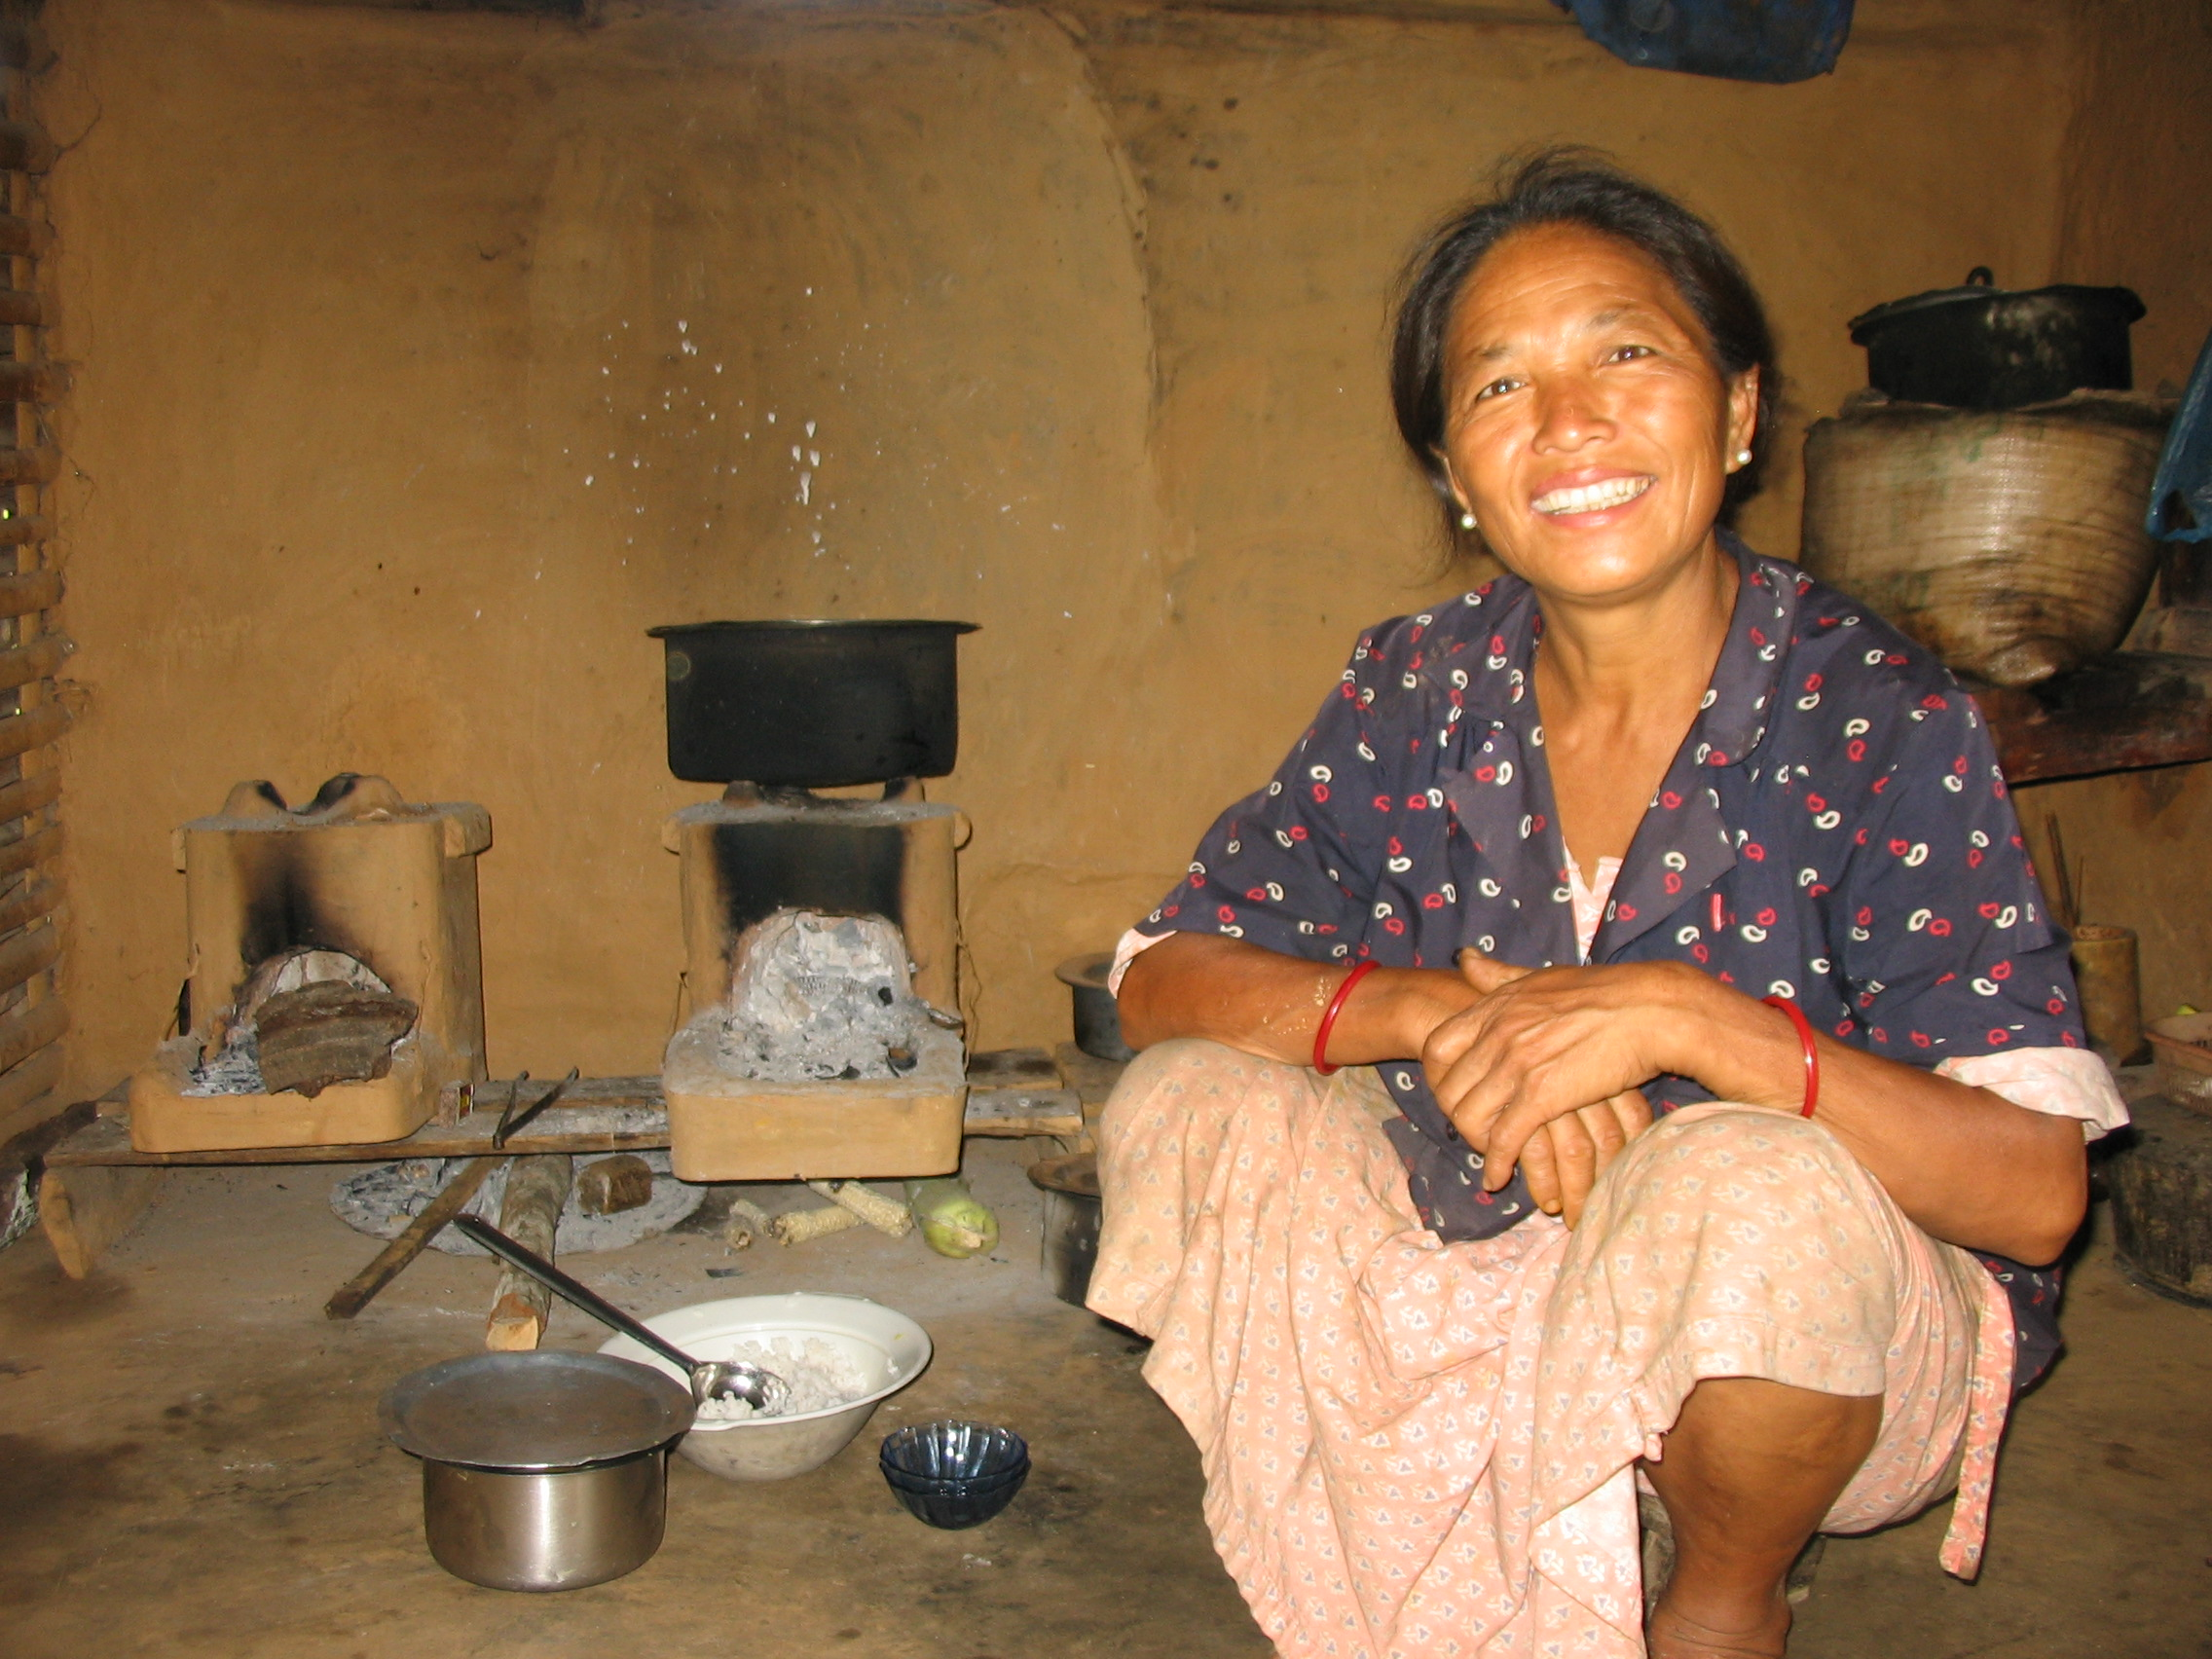 Learn how to cook traditional food on your Gap Year with friends